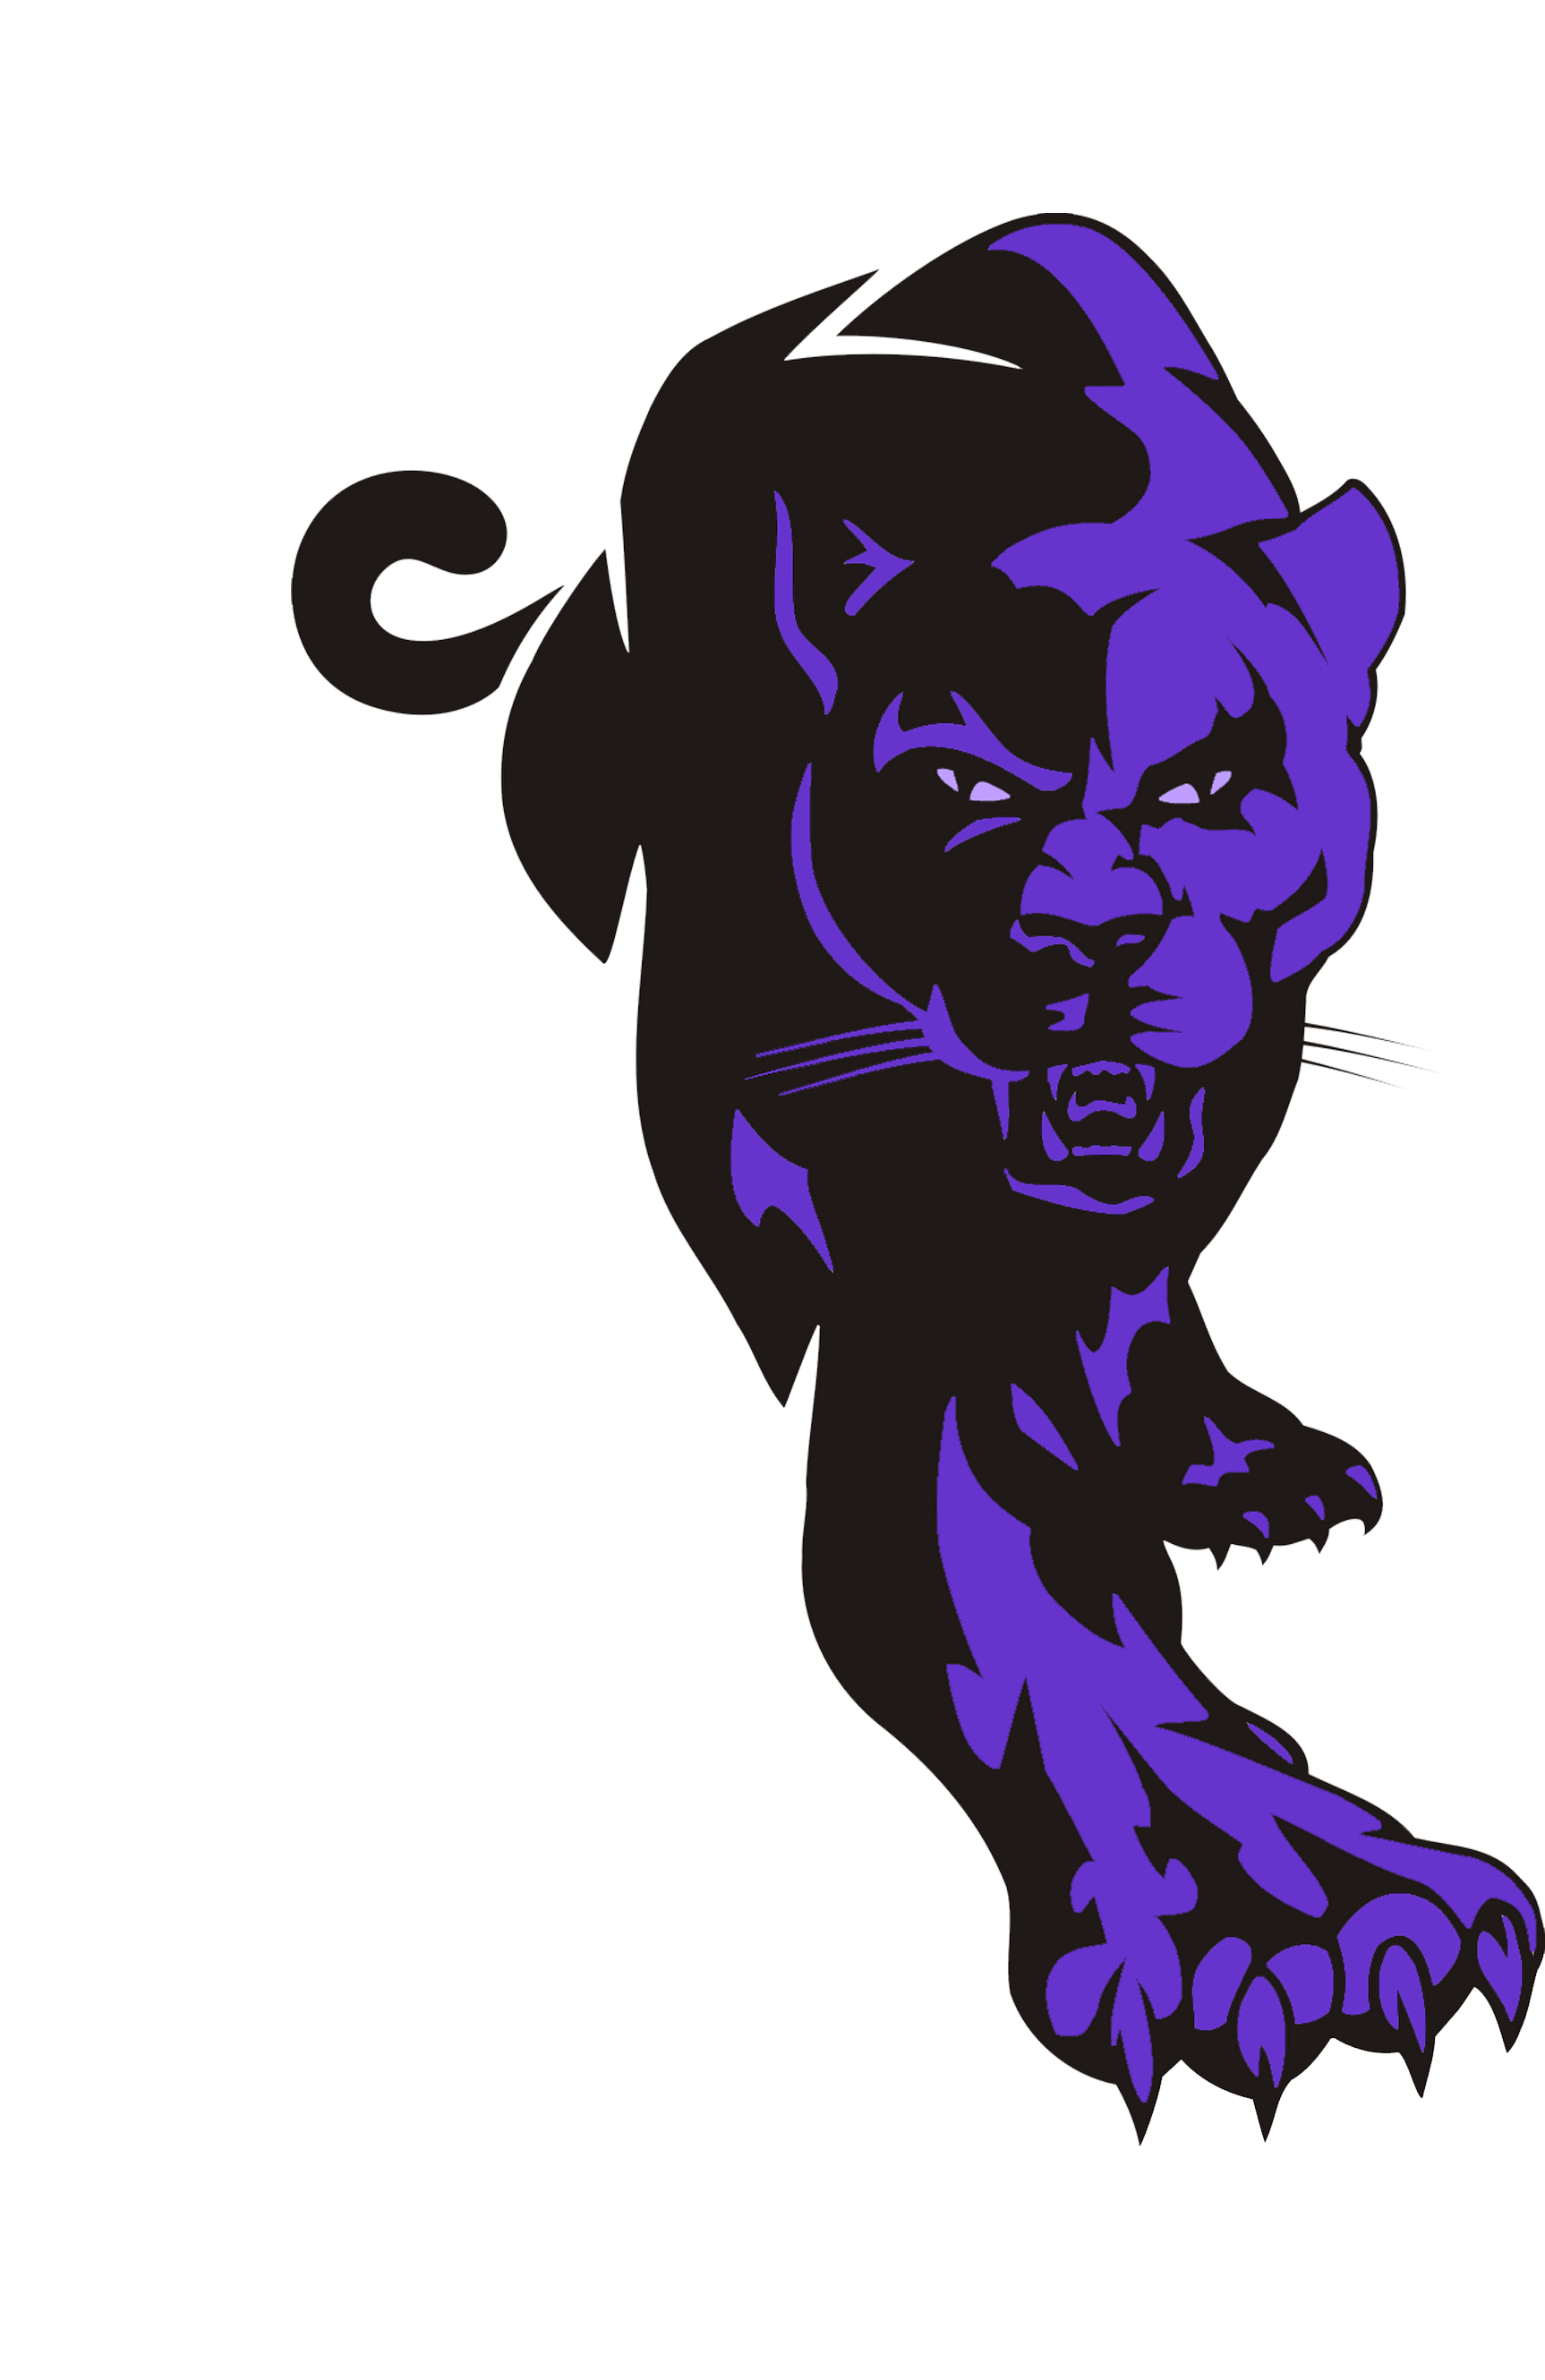 Purple panther png. Clipart frames illustrations hd